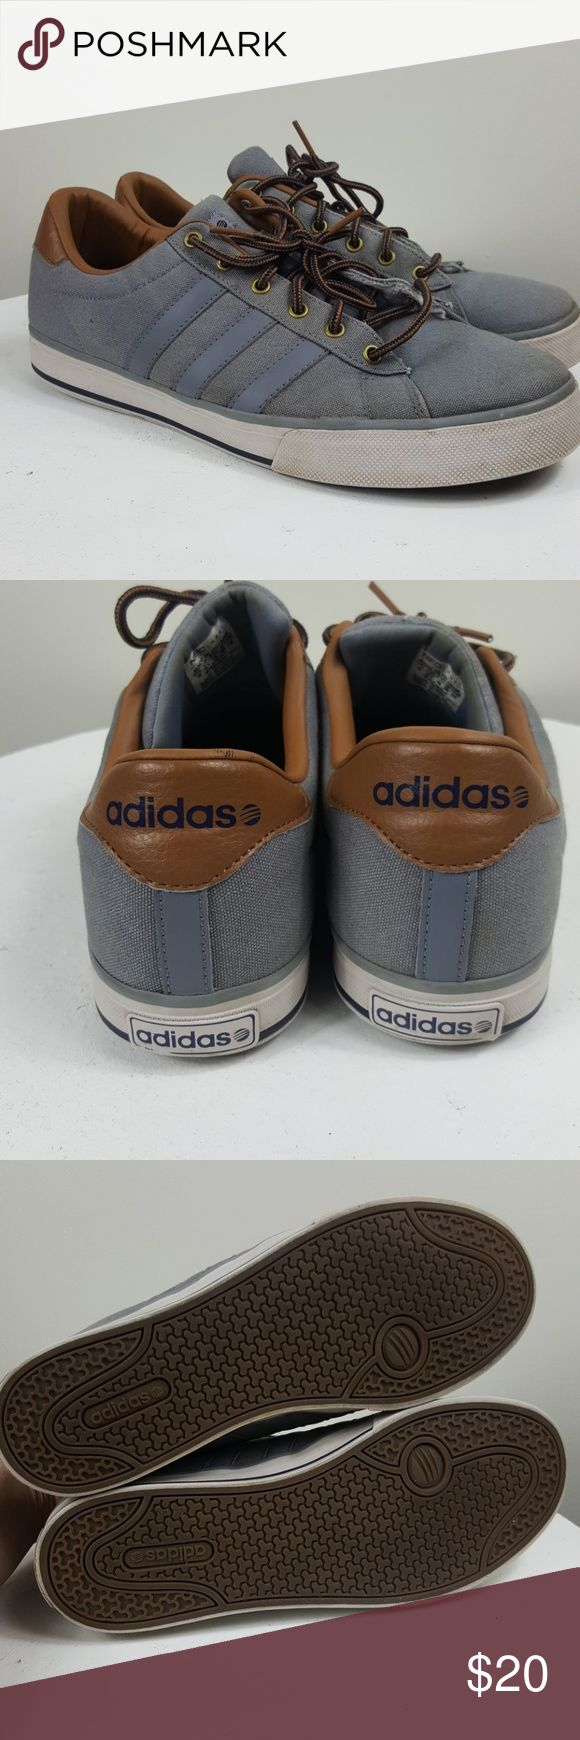 Men's Comfort ADIDAS Neo Ortholite Mens Sneakers Adidas Neo with Comfort foam insole  Casual Grey blue steel Tennis shoes with Brown leather ankles   Barely worn the soles are in great condition. Had a few minor blemishes here and there. adidas Shoes Sneakers